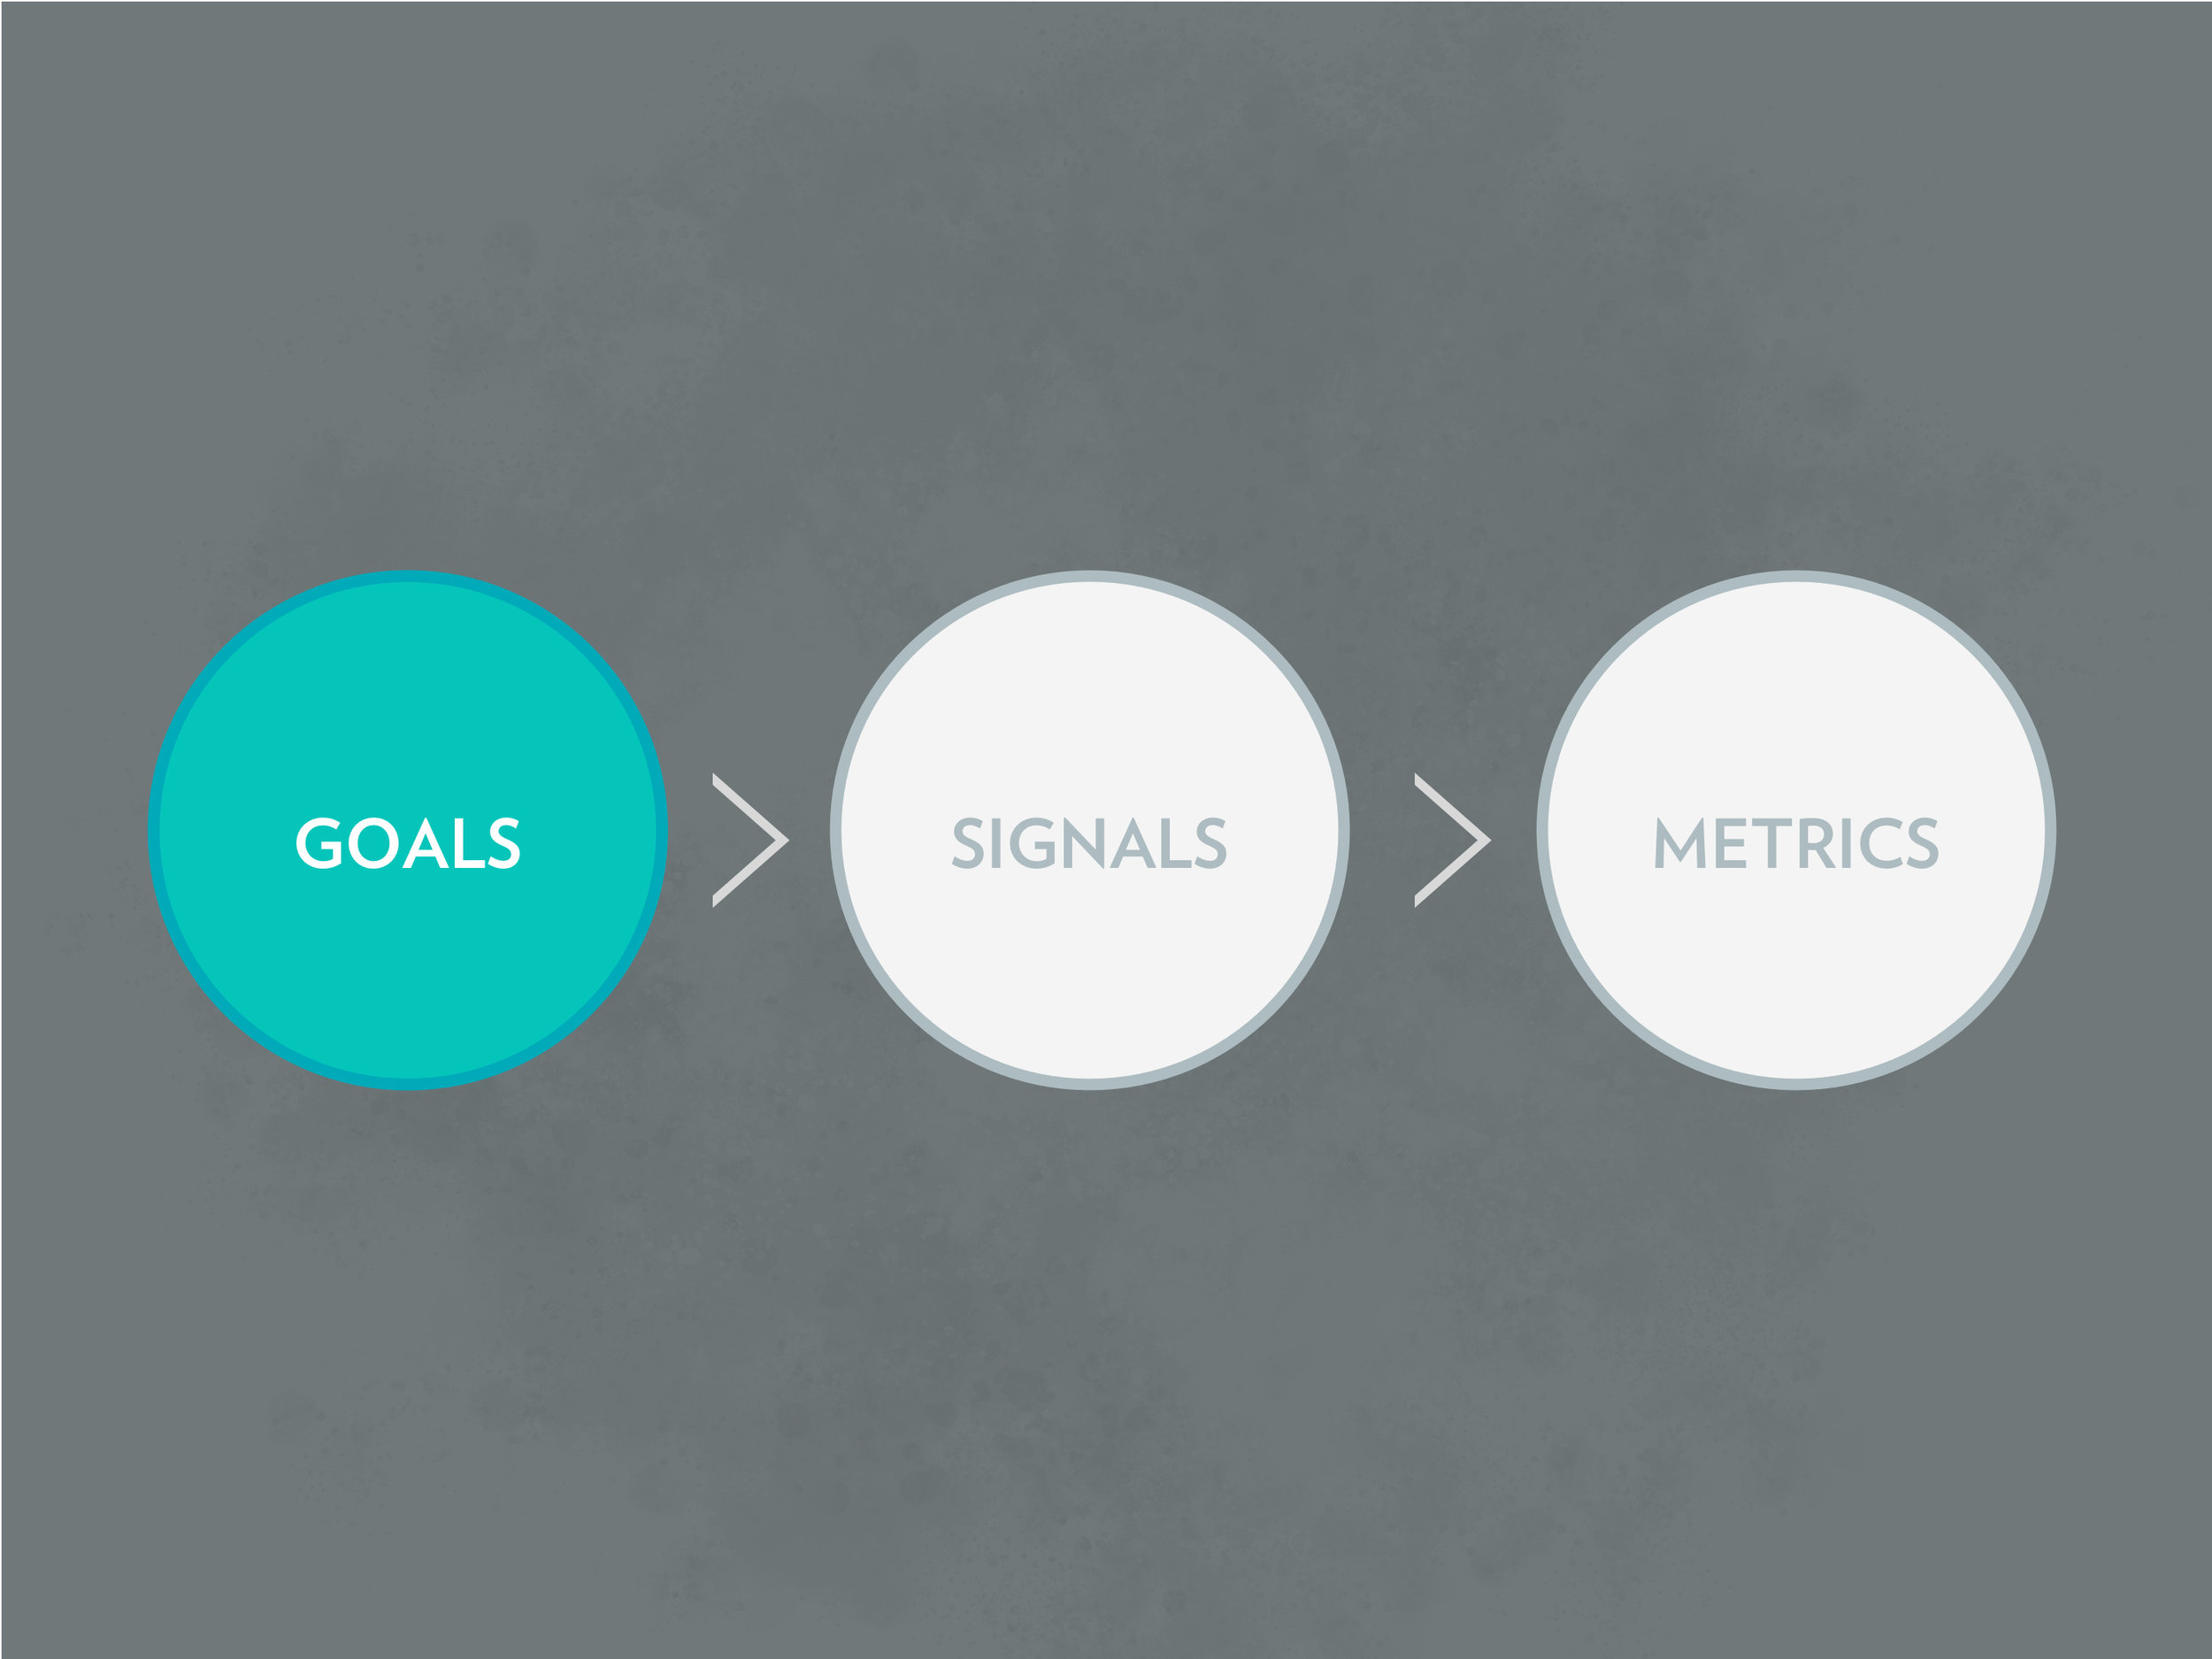 Defining goals is the first step in the goals, signals, metrics framework